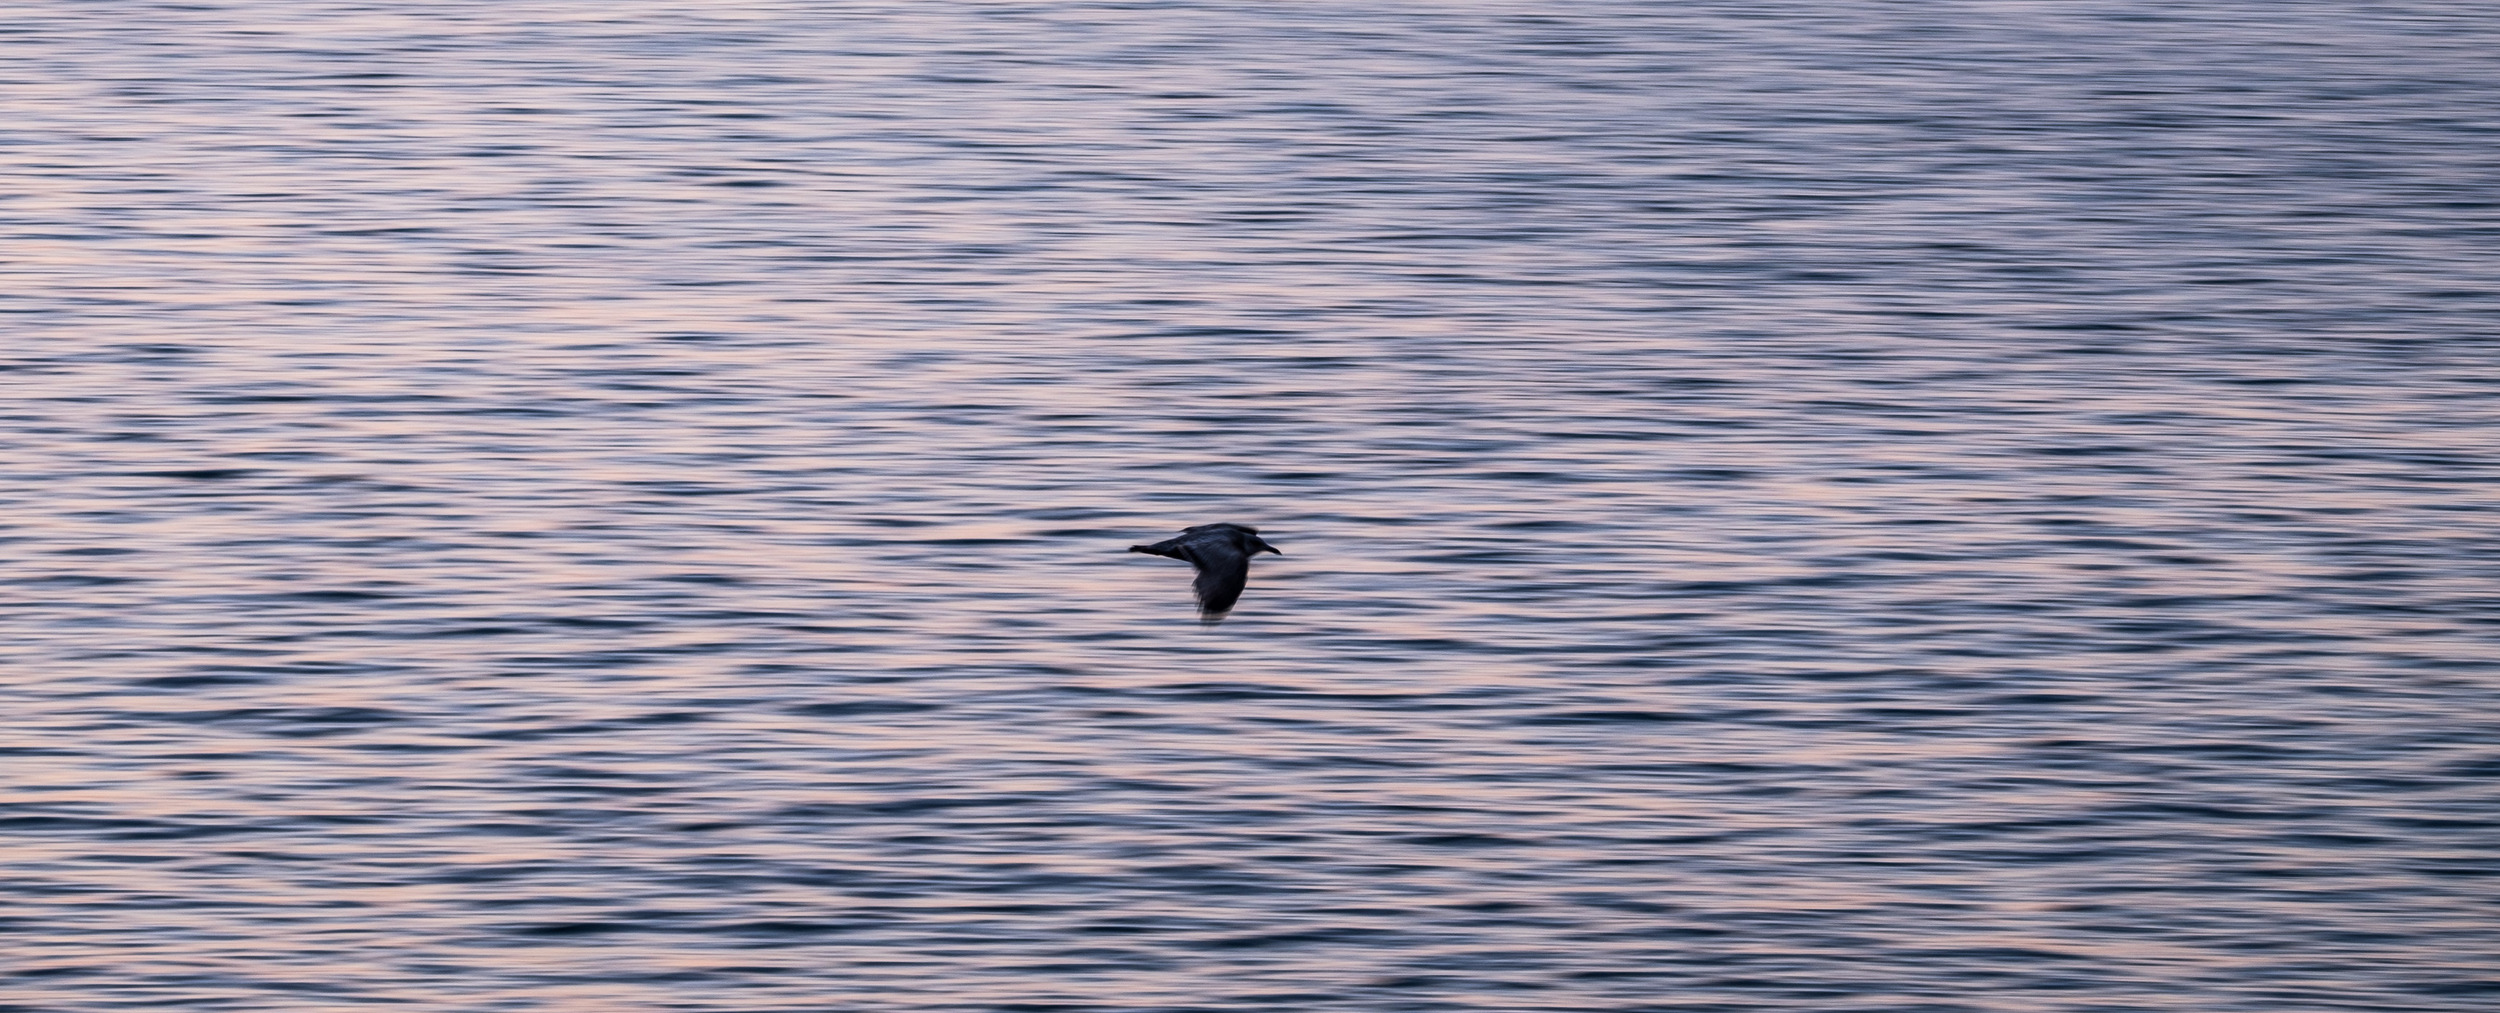 Birds soar throughout Acadia National Park in Maine.